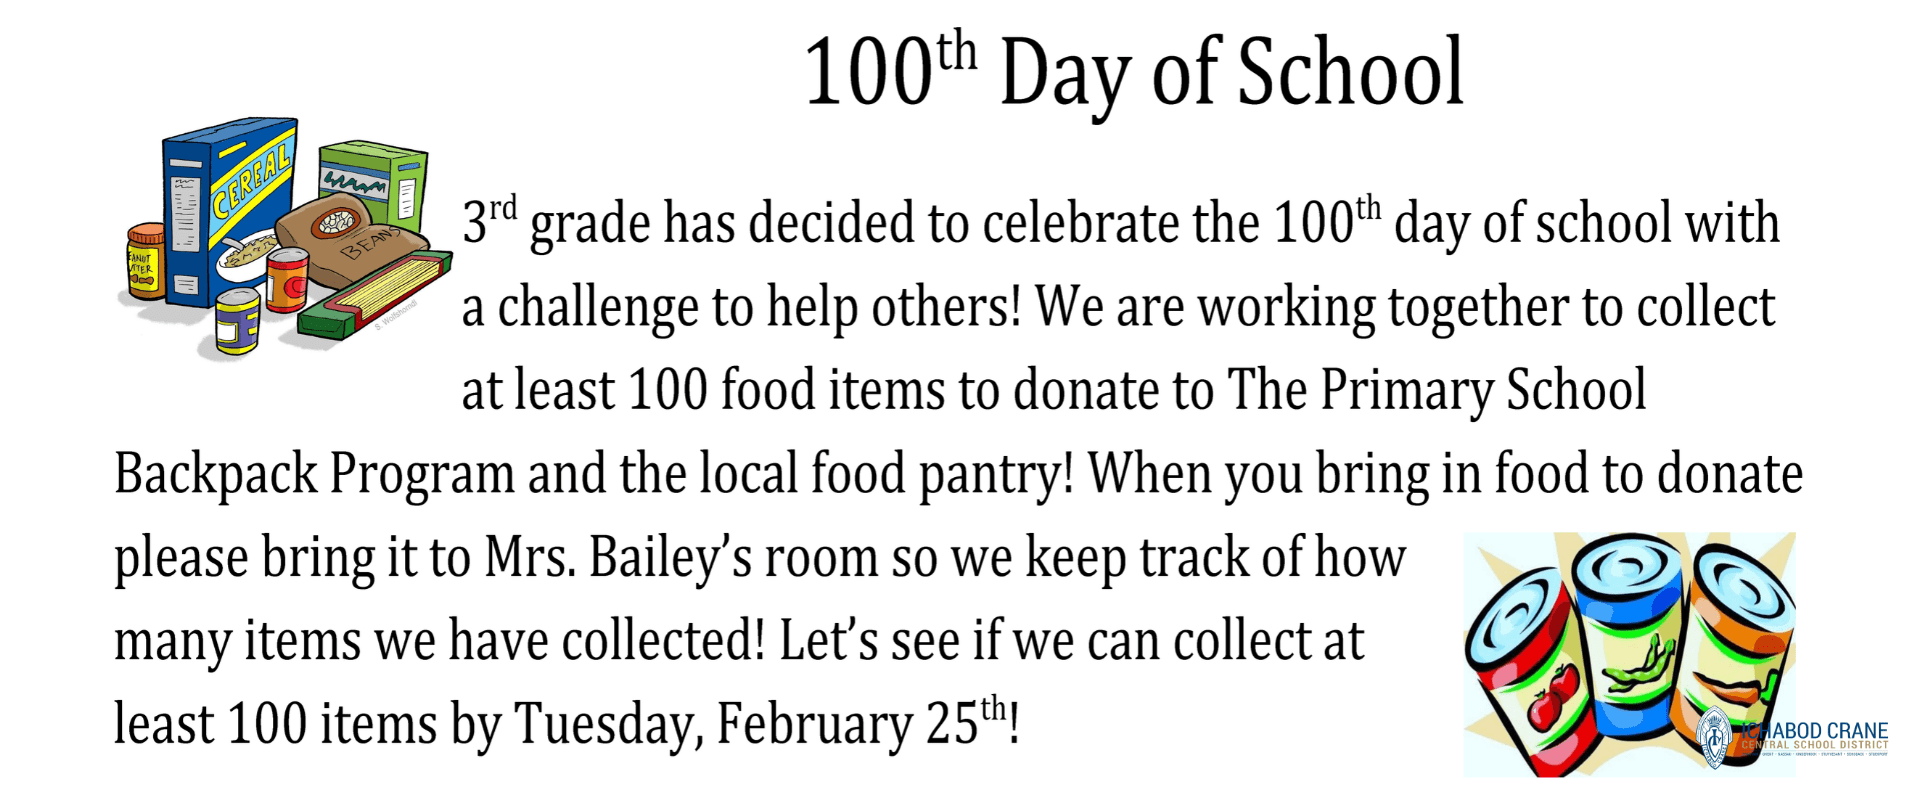 3rd Grade Food Drive for 100th Day of School